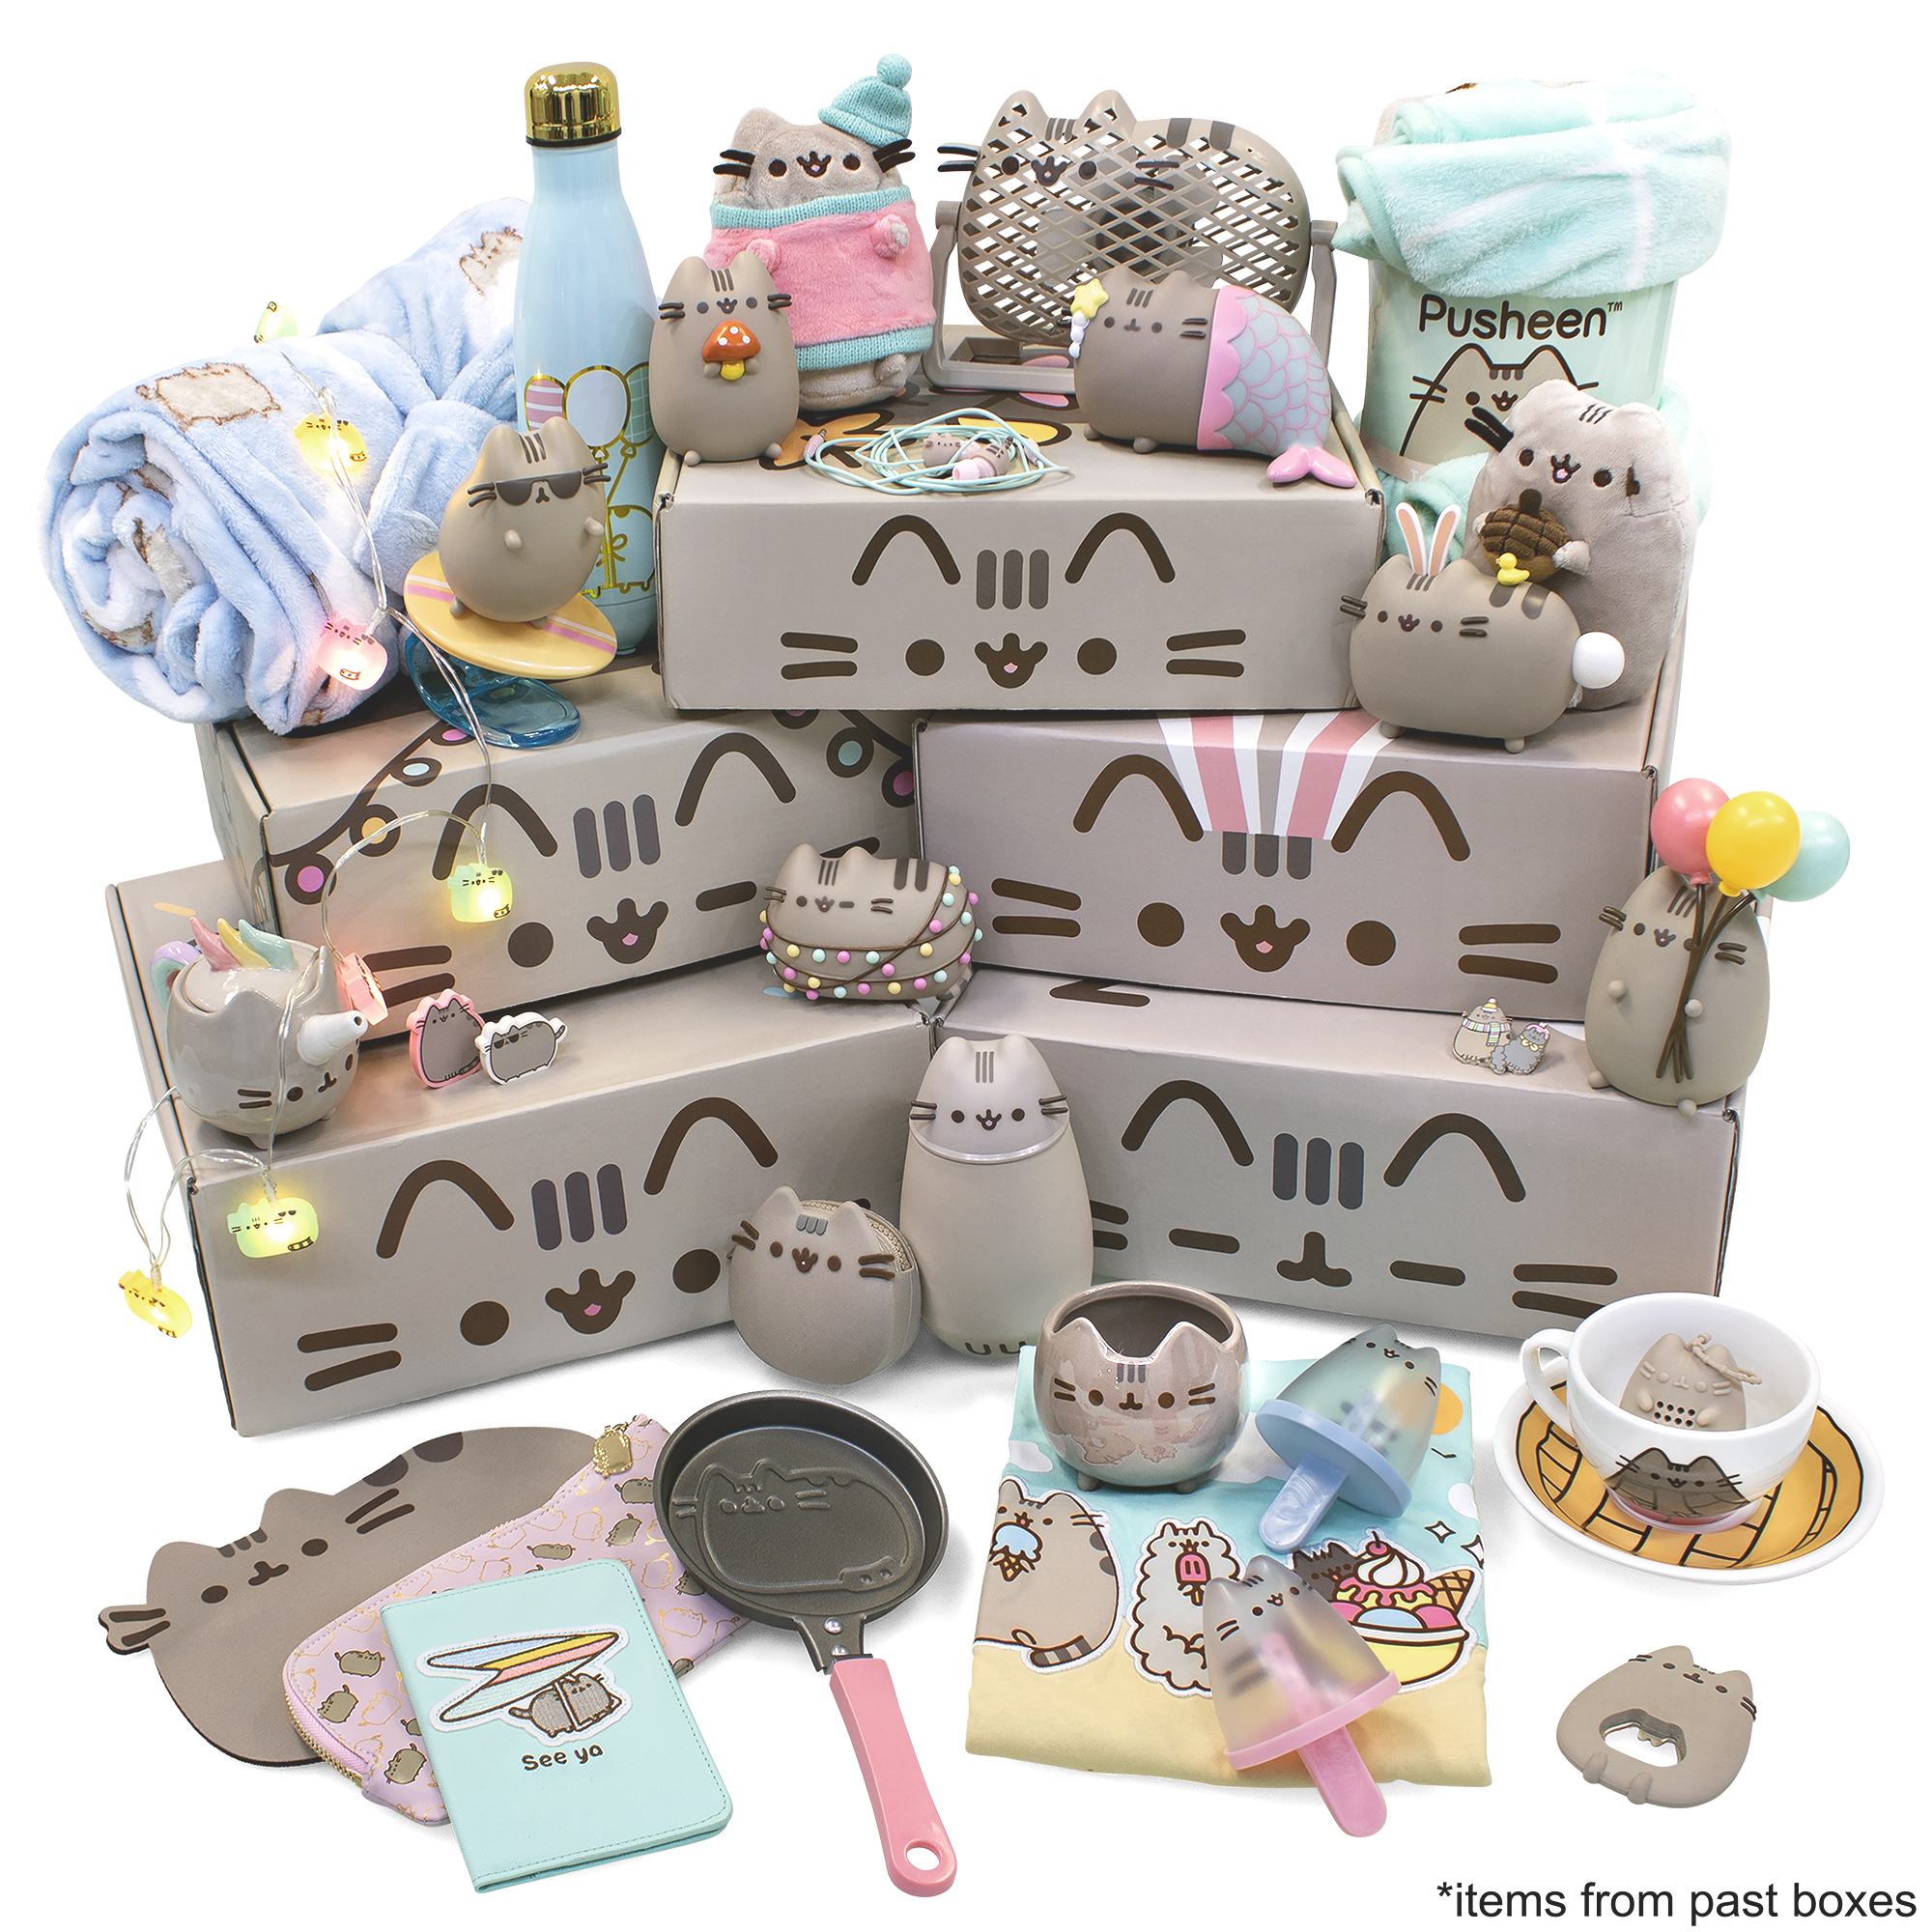 Pusheen Box - Officially Licensed Pusheen the Cat Mystery Subscription Box (Best Cat Subscription Box)